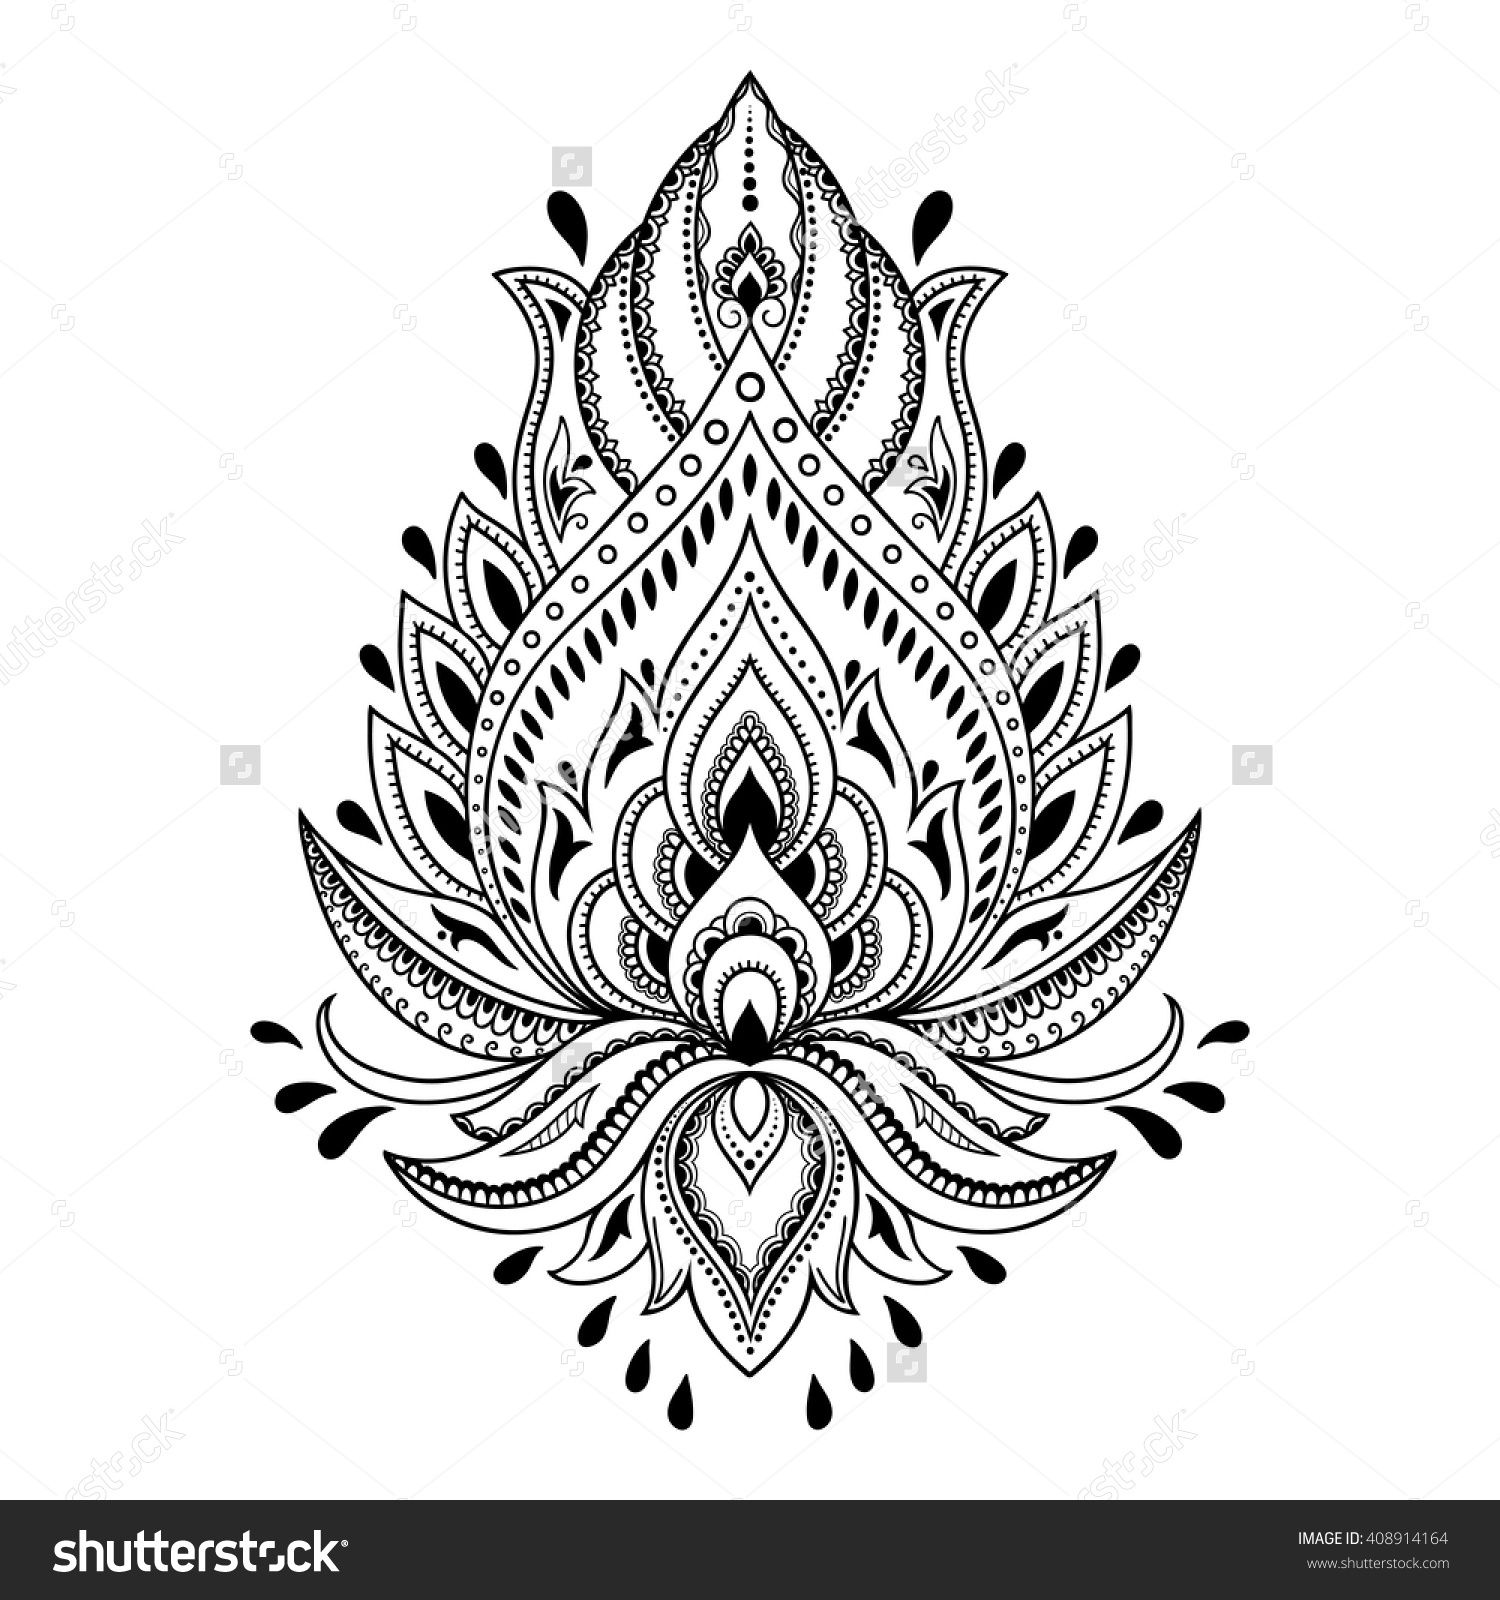 henna tattoo flower template in indian style ethnic floral paisley lotus mehndi style. Black Bedroom Furniture Sets. Home Design Ideas